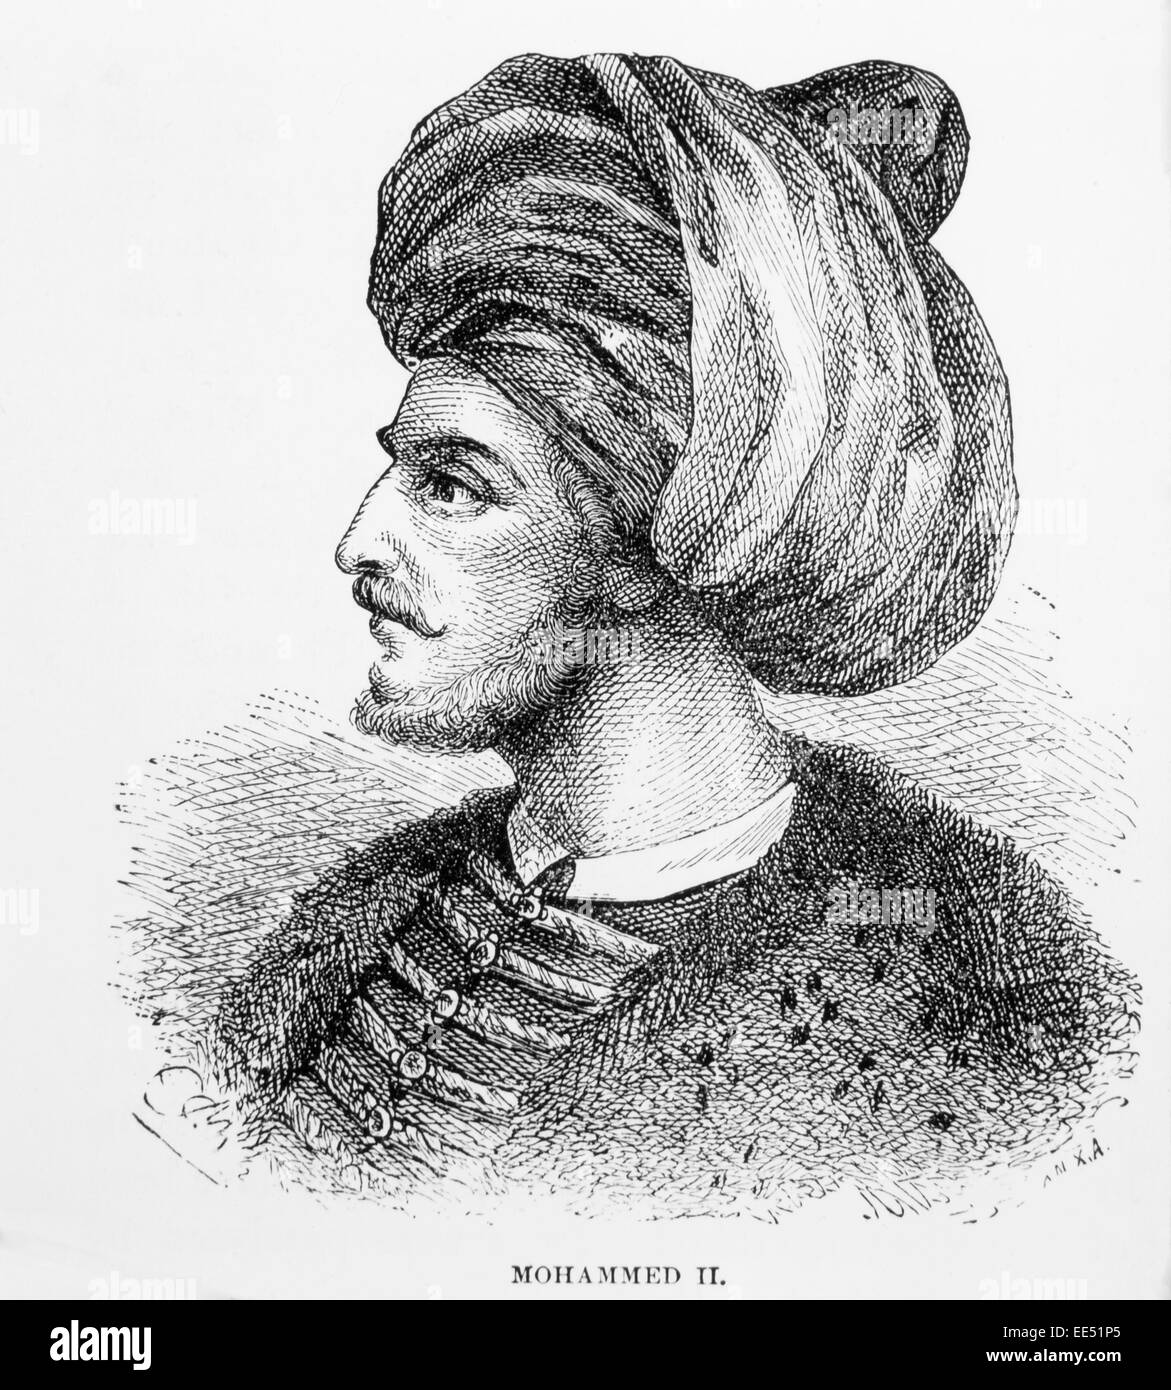 Mehmed II (1432-81), Ottoman Sultan, Considered the True Founder of the Ottoman Empire, Engraving 1885 - Stock Image